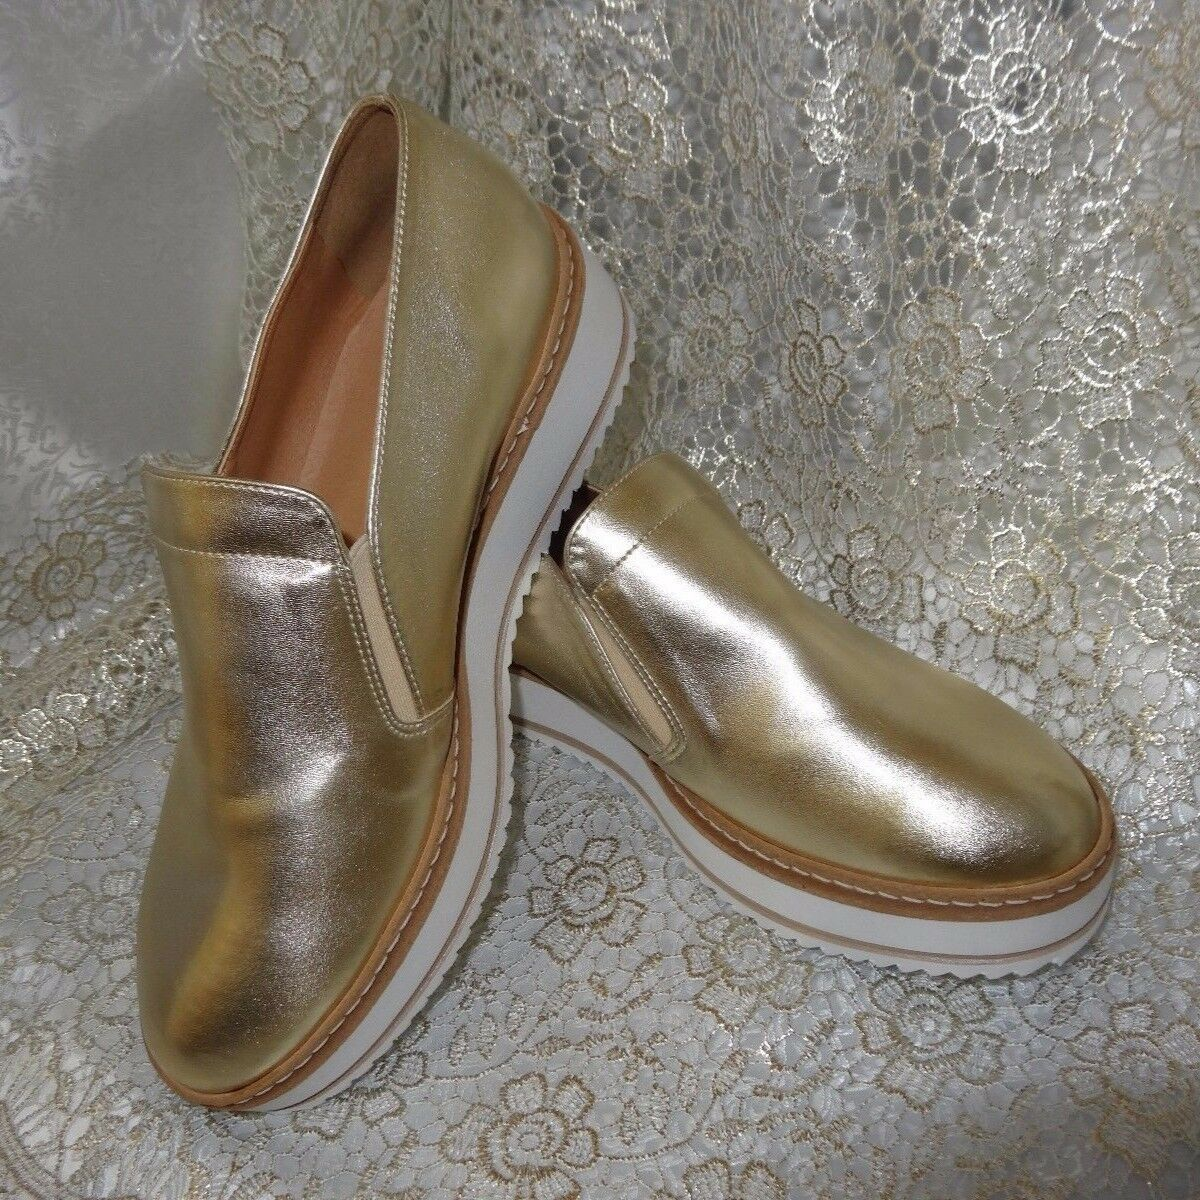 GOLD REAL LEATHER platform flat Womens shoes 7 side zipper round toe Greece